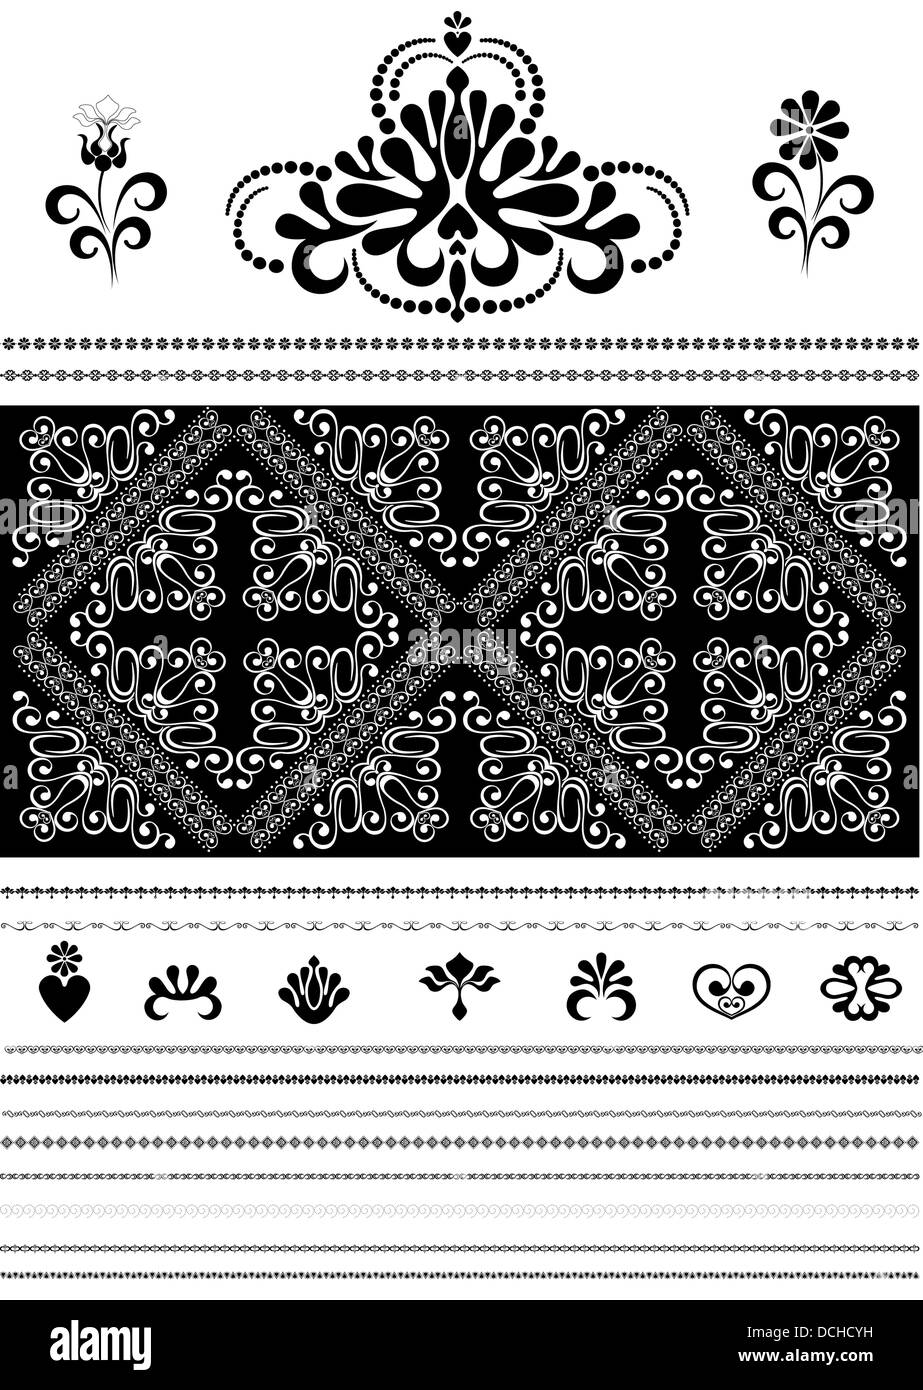 Calligraphic openwork border and ornaments for design - Stock Image